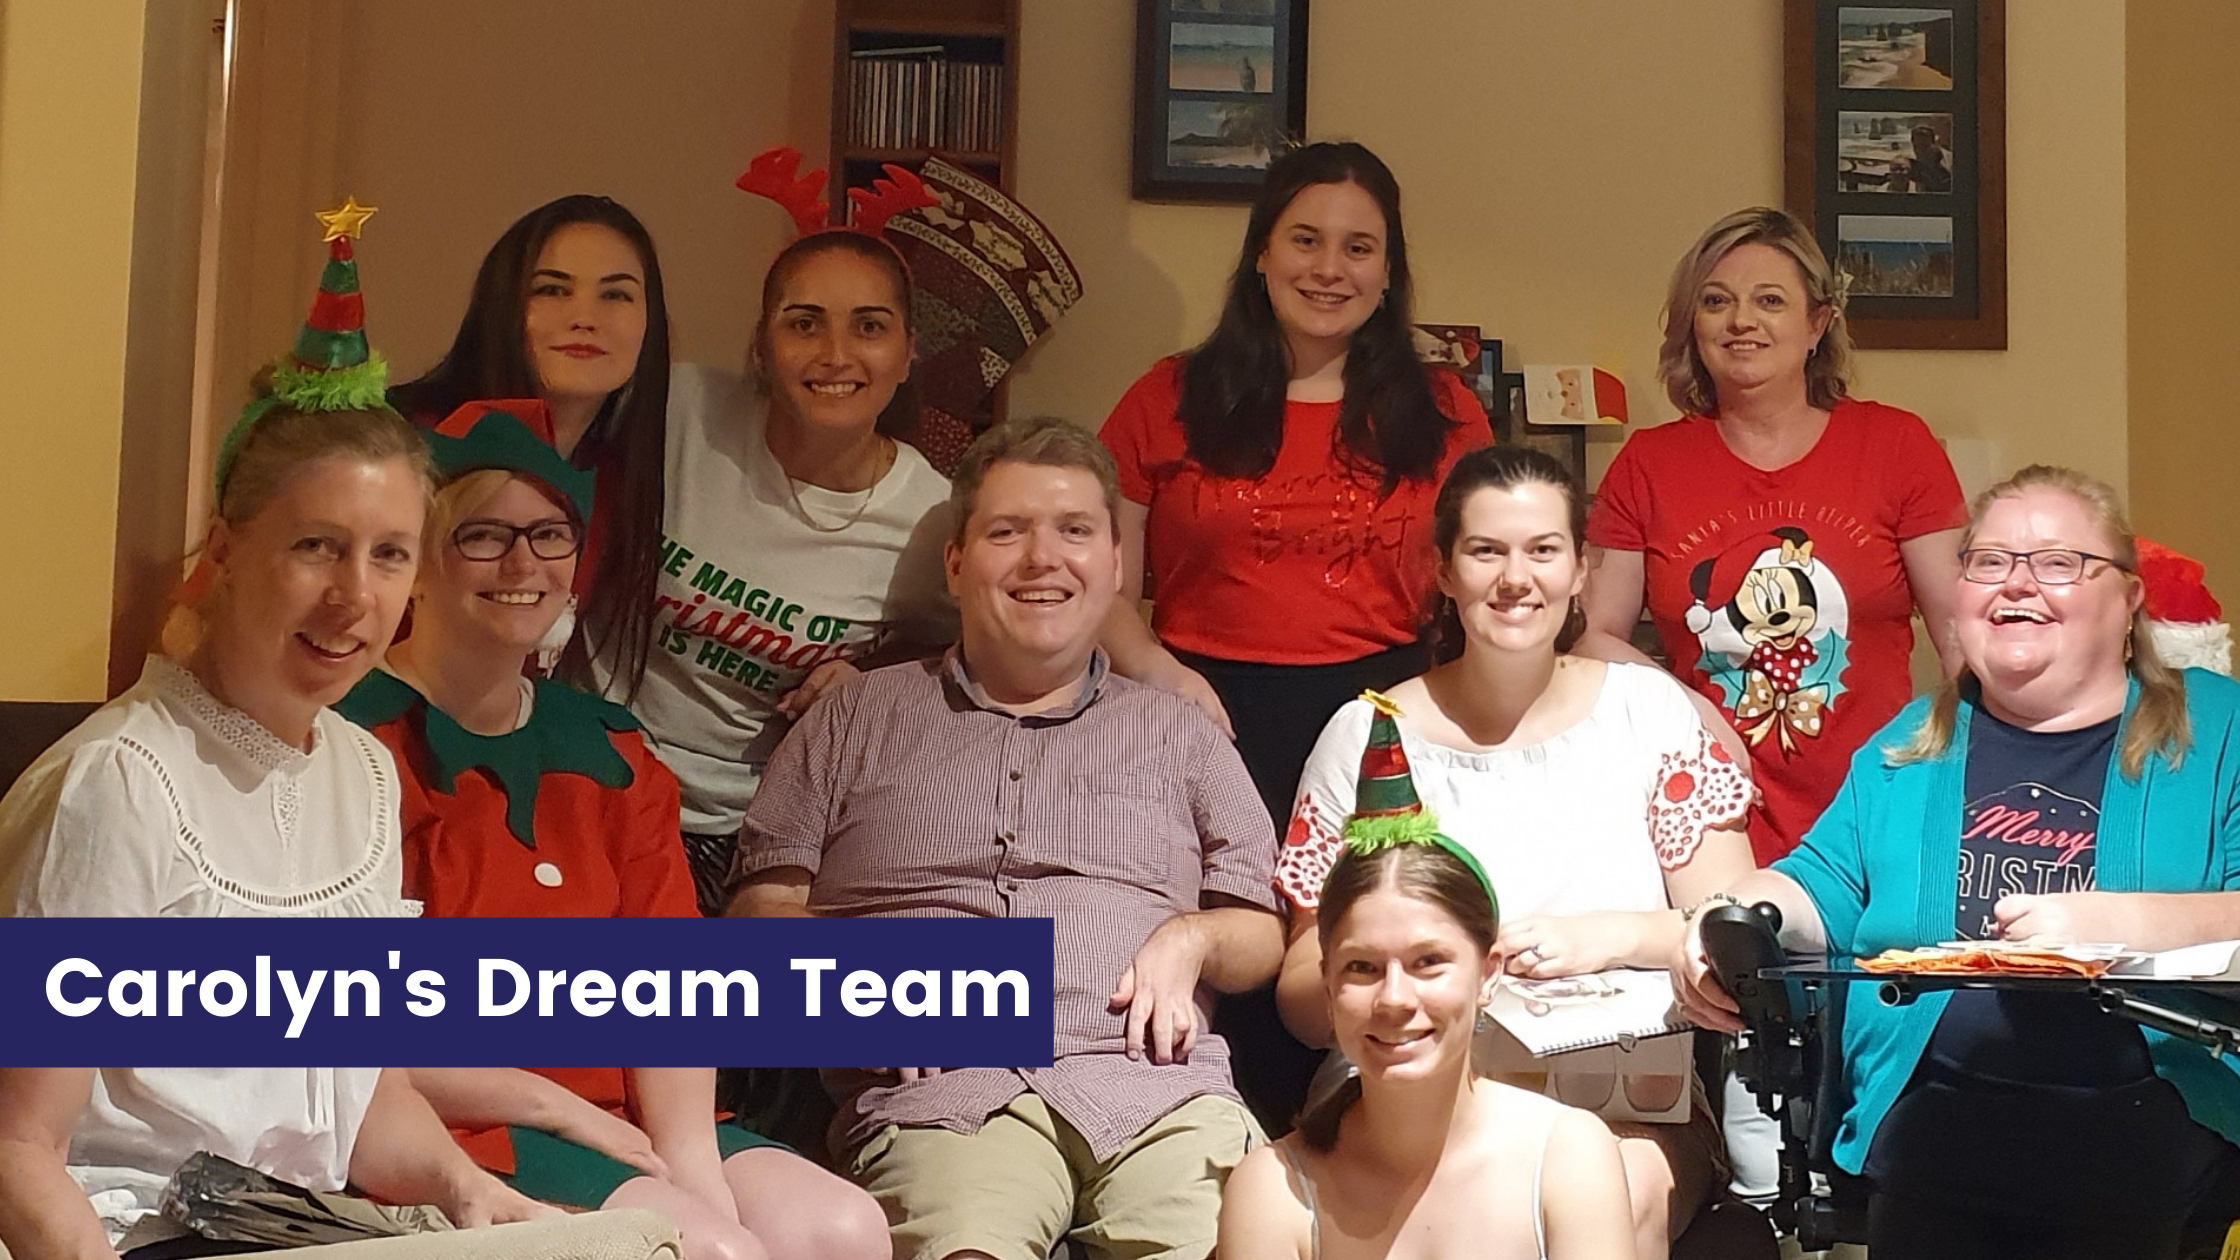 Carolyns  Dream Team - Carolyn and her partner surrounded by 8 people in Christmas costumes